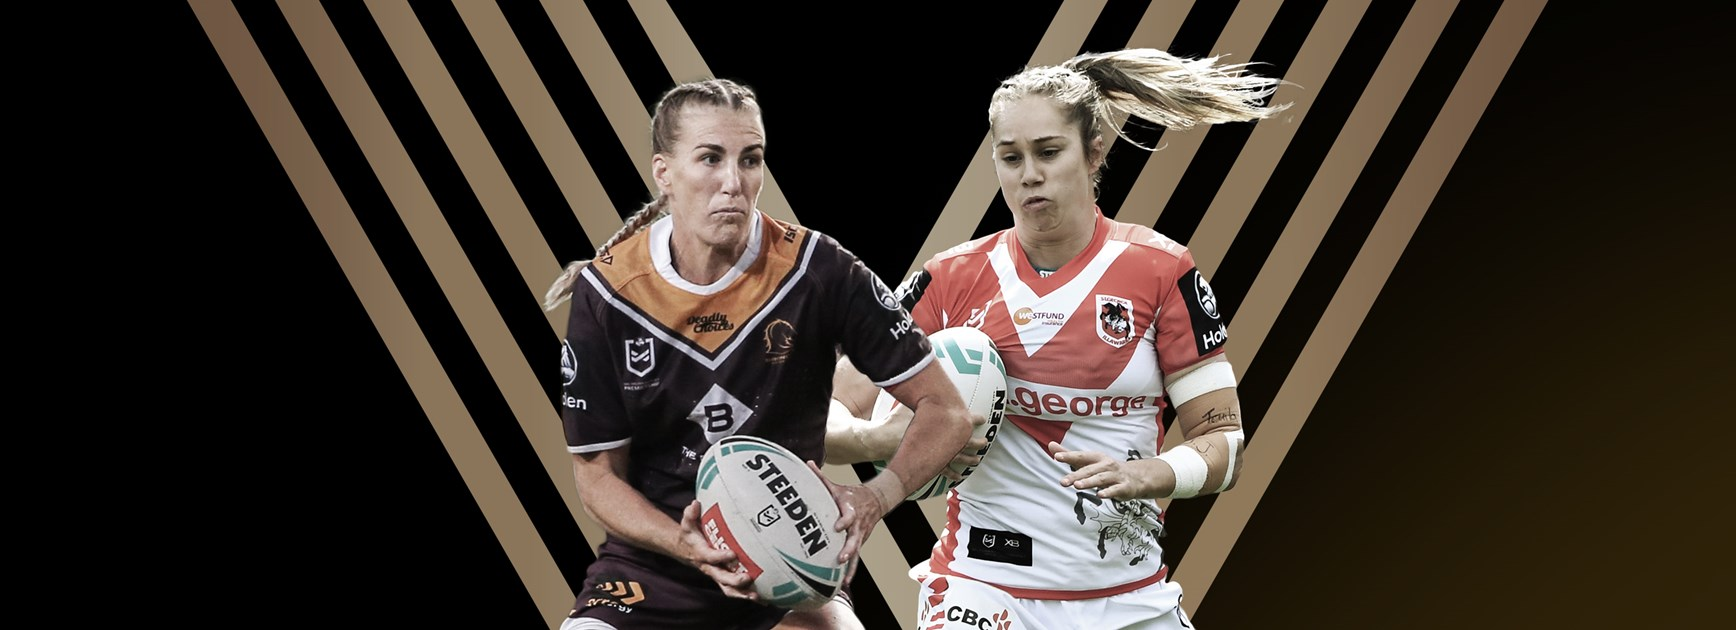 NRLW grand final: Baker out; Dragons 1-17